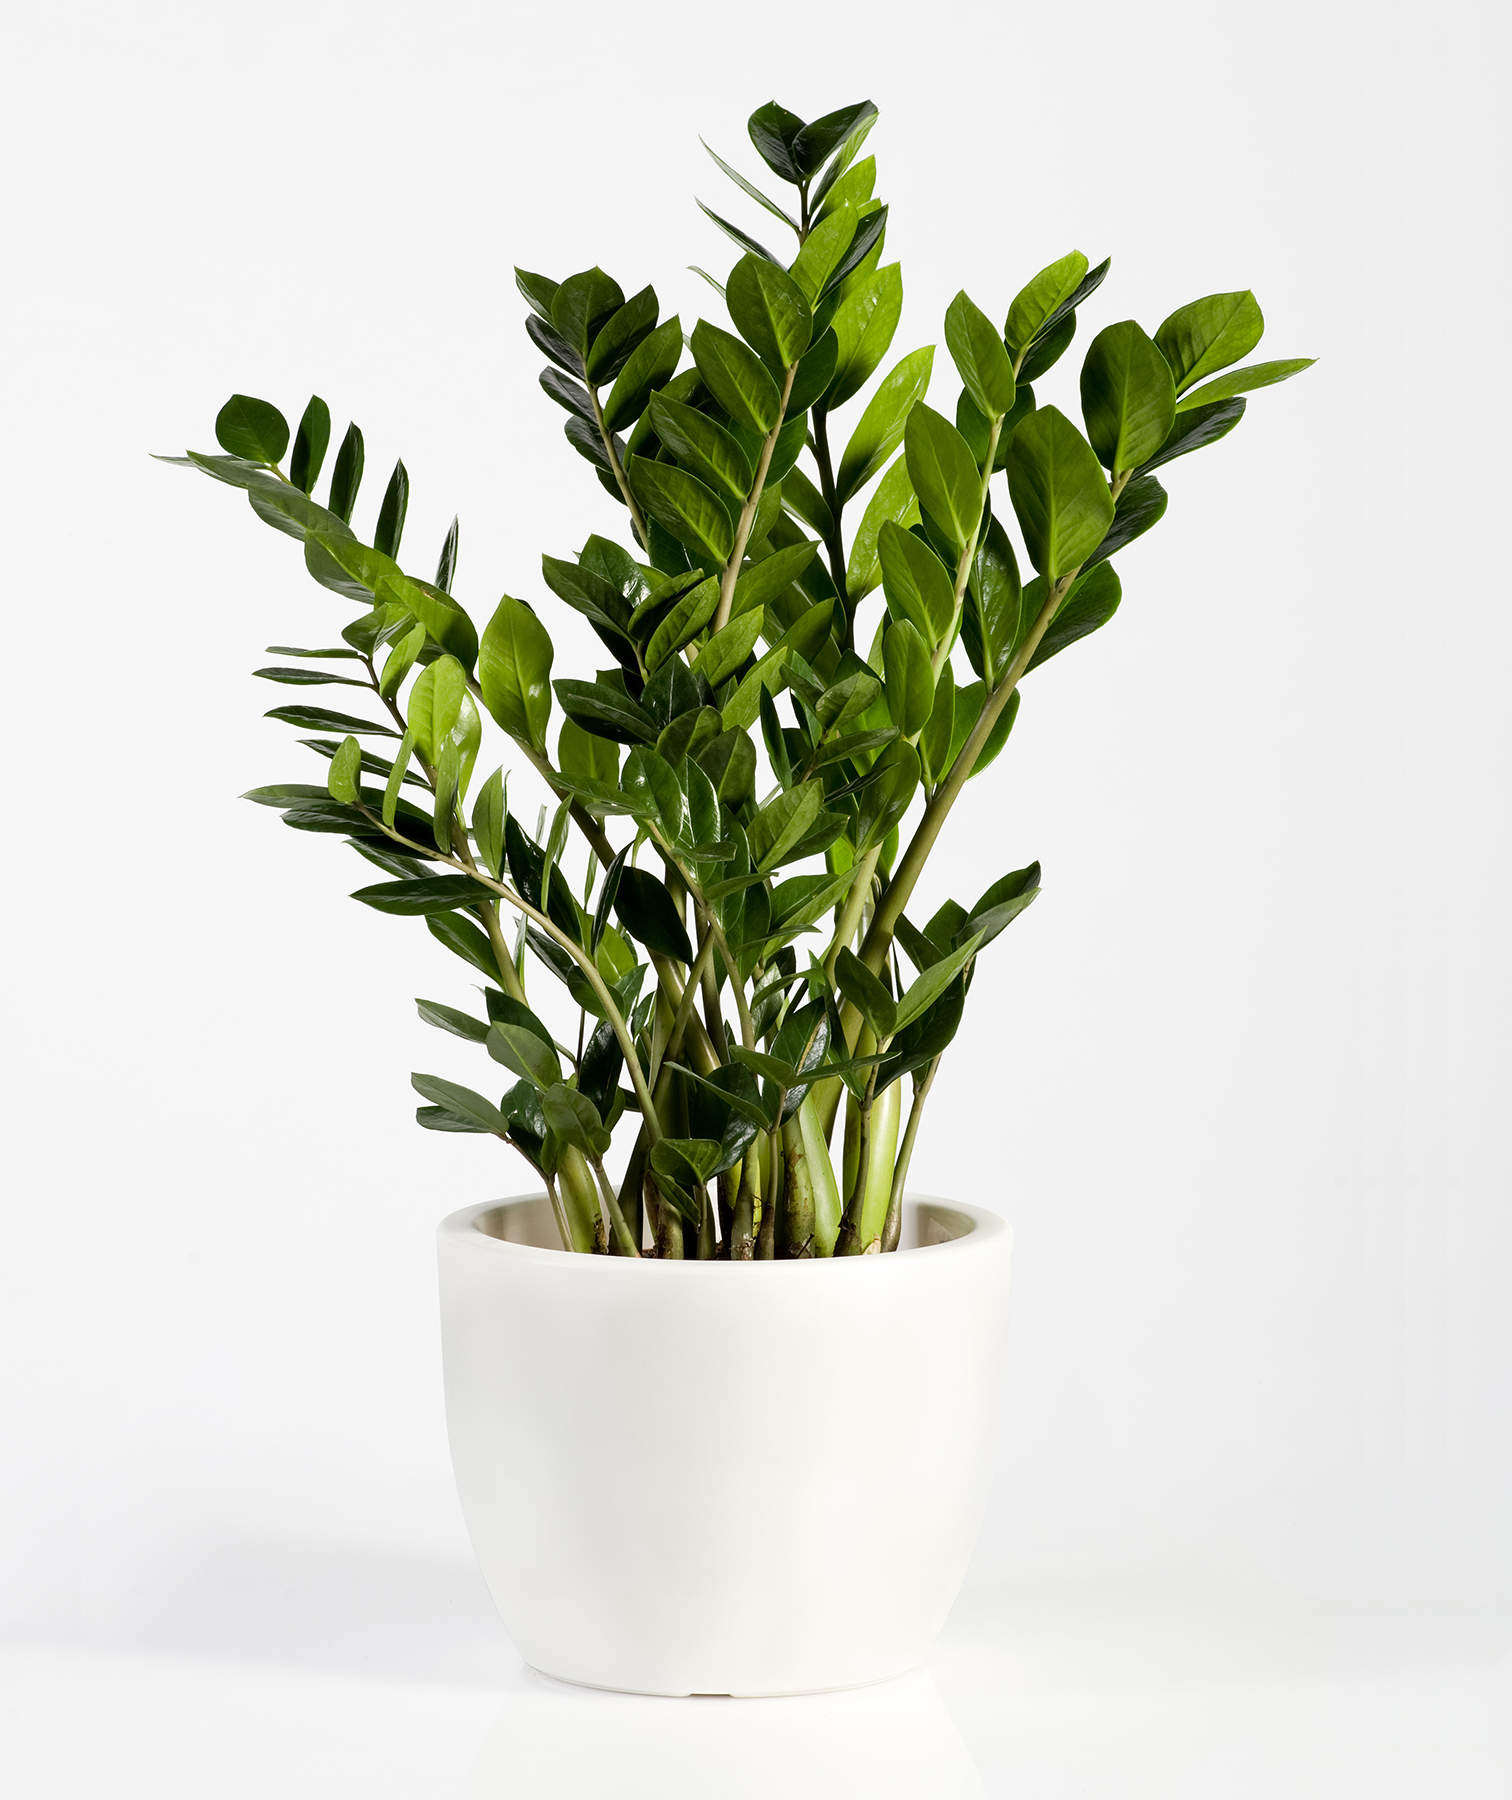 14 Hardy Houseplants That Will Survive the Winter | Real Simple on bedding plants that like shade, indoor plants that like shade, climbing plants that like shade, desert plants that like shade, blooming plants that like shade, house plants that thrive in shade, vegetable plants that like shade, vining plants that like shade, tropical plants that like shade, pool equipment cover for shade, house plants that like sun, flowering plants that like shade, patio plants that like shade,